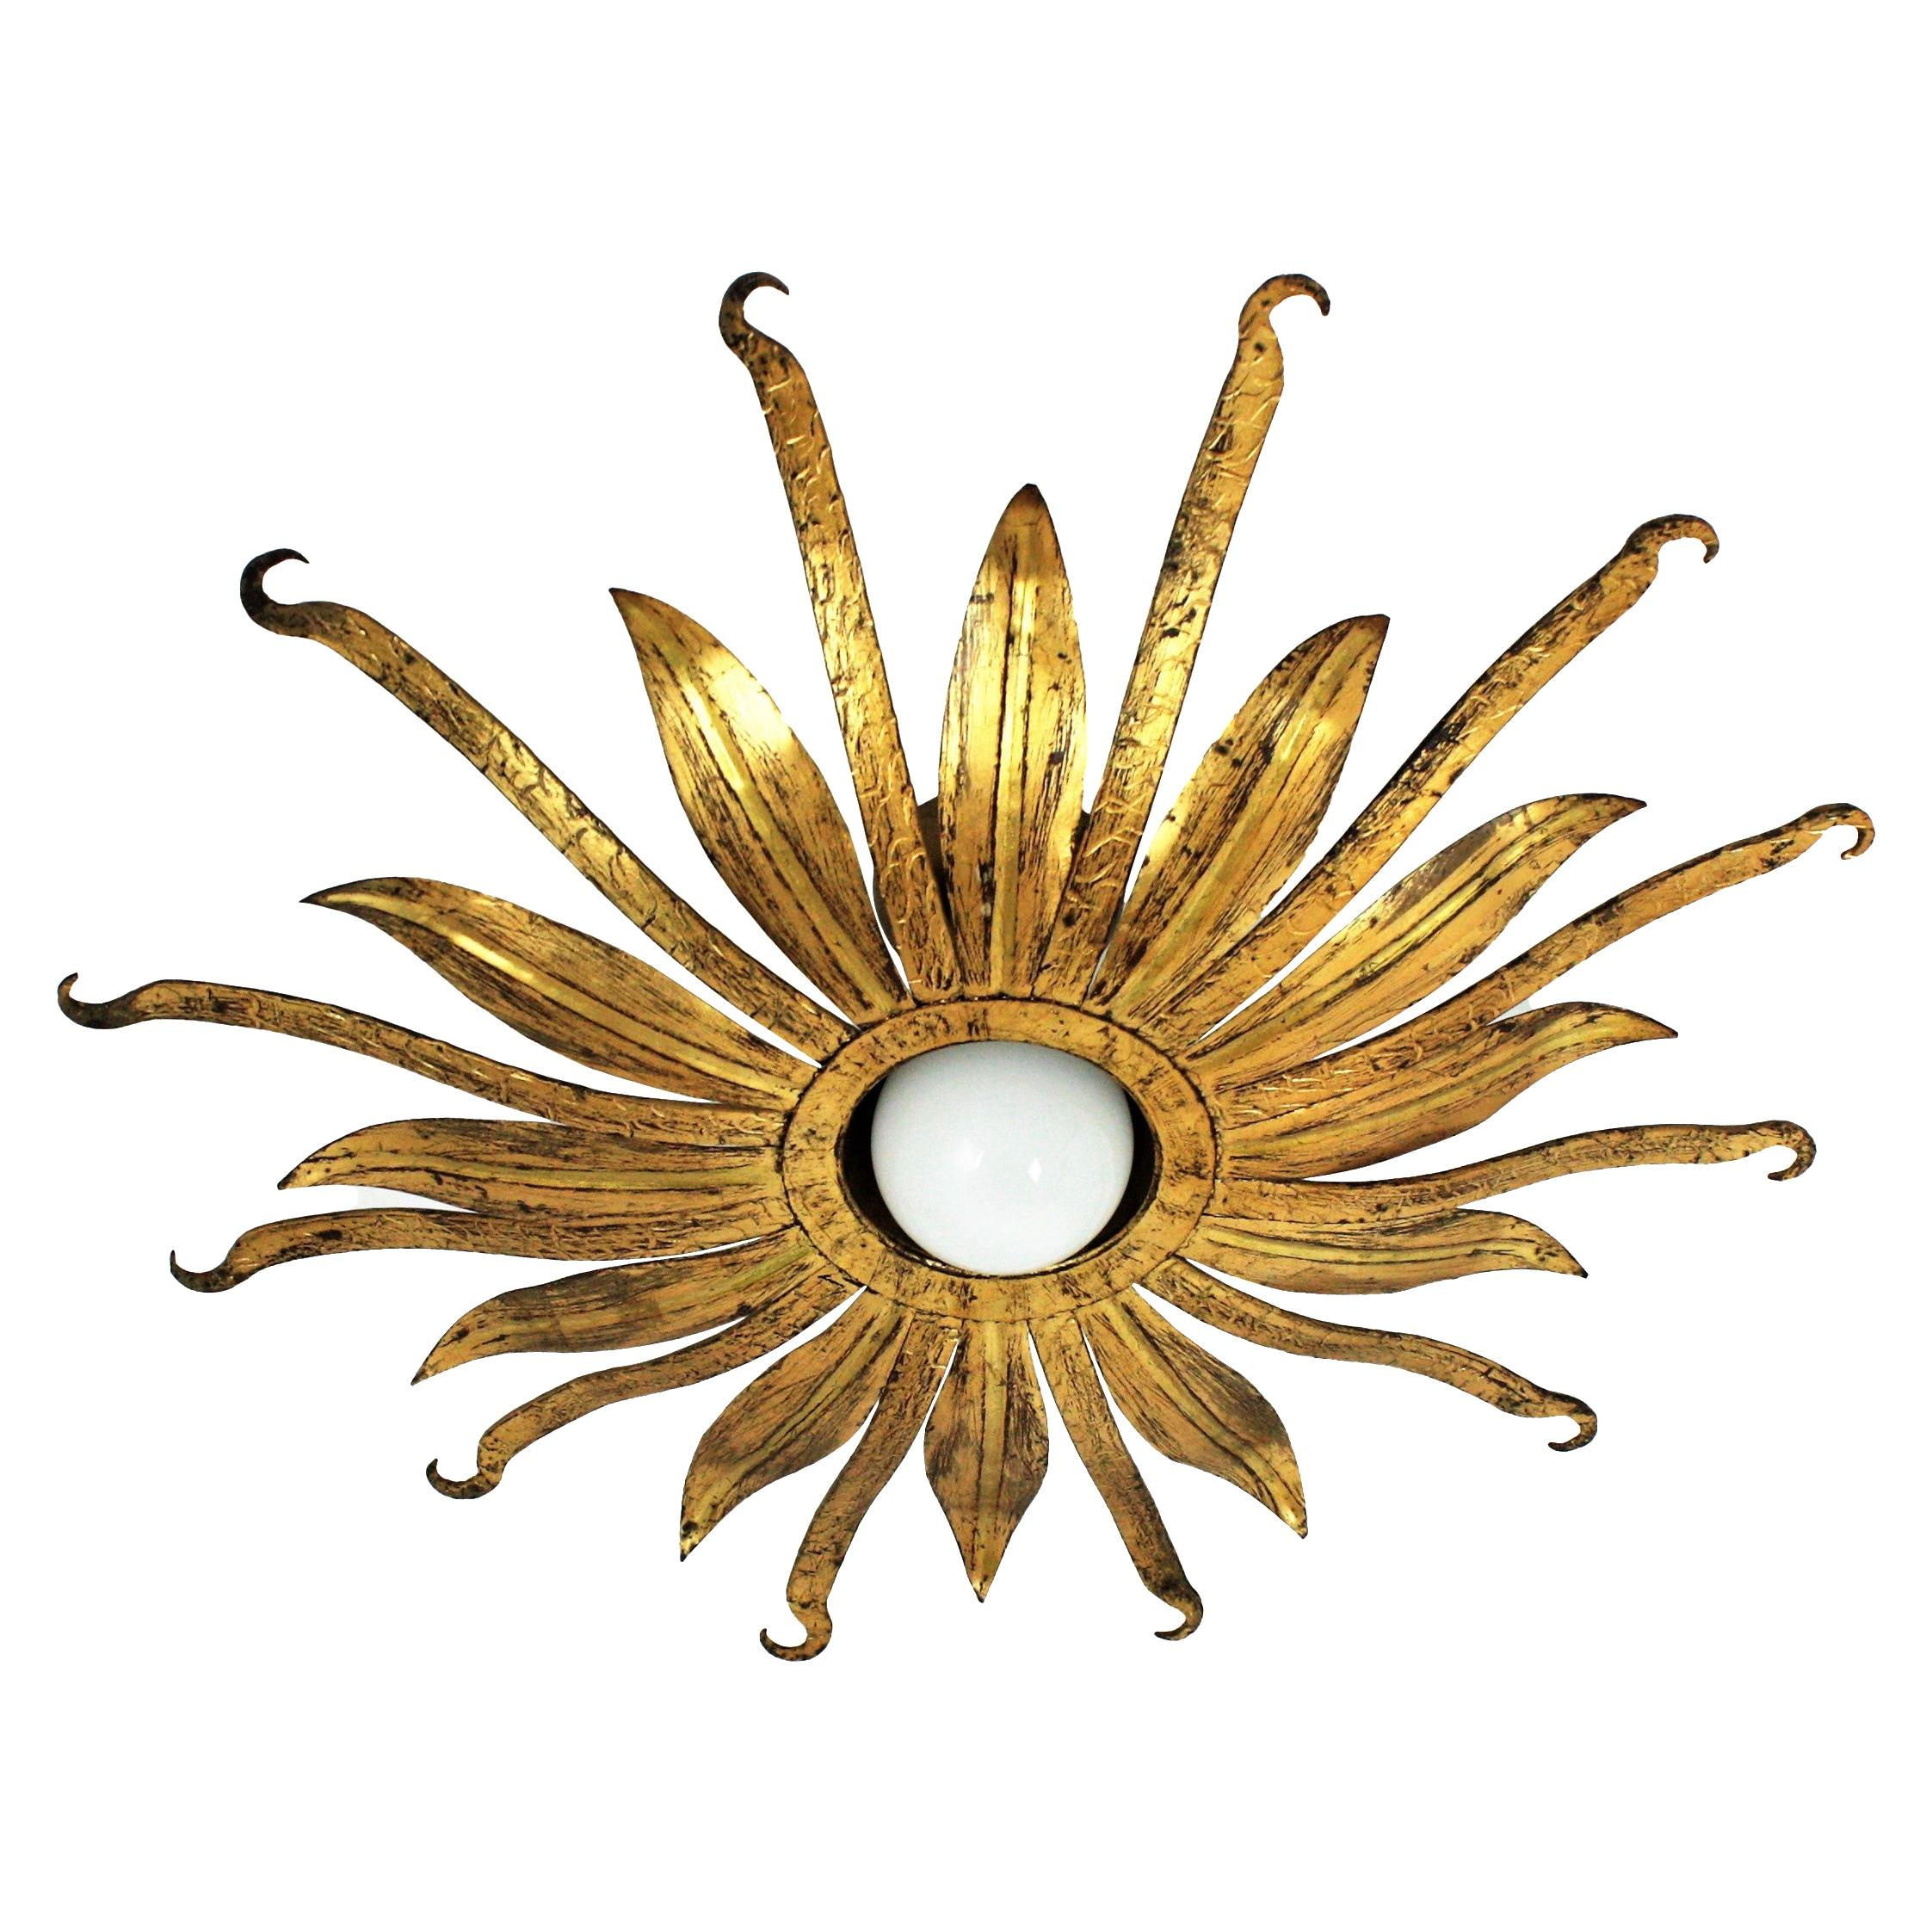 Sunburst Flower Light Fixture in Gold Leaf Gilt Metal, 1960s